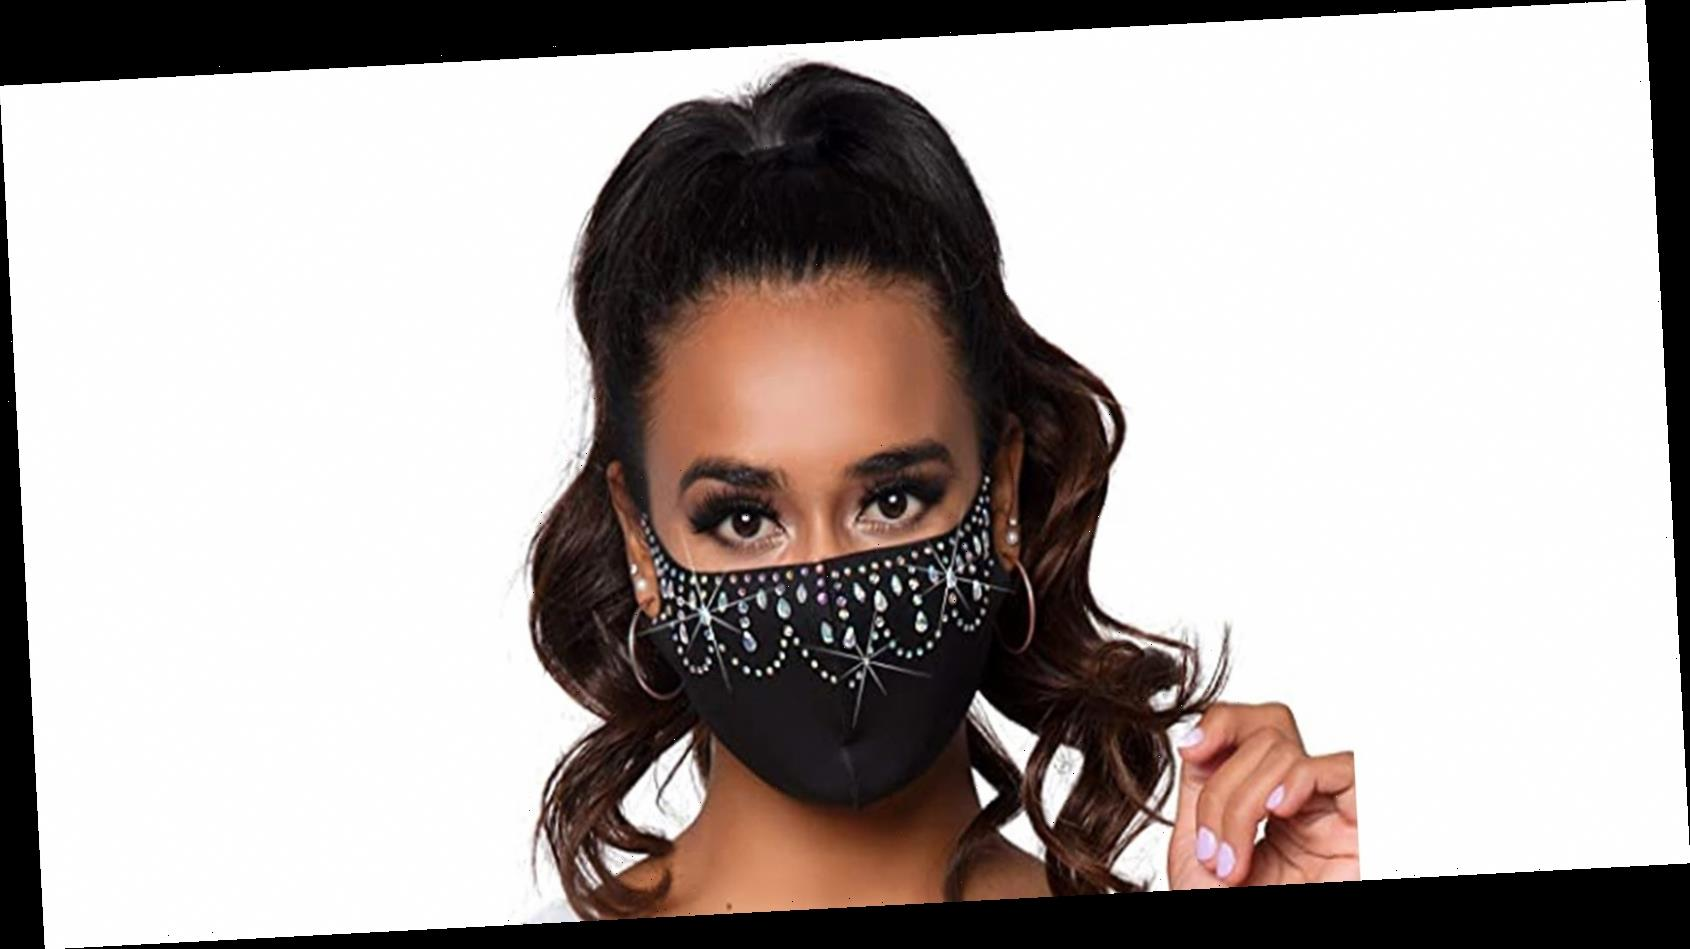 Make a Sparkly Statement in These Rhinestone-Embellished Face Masks